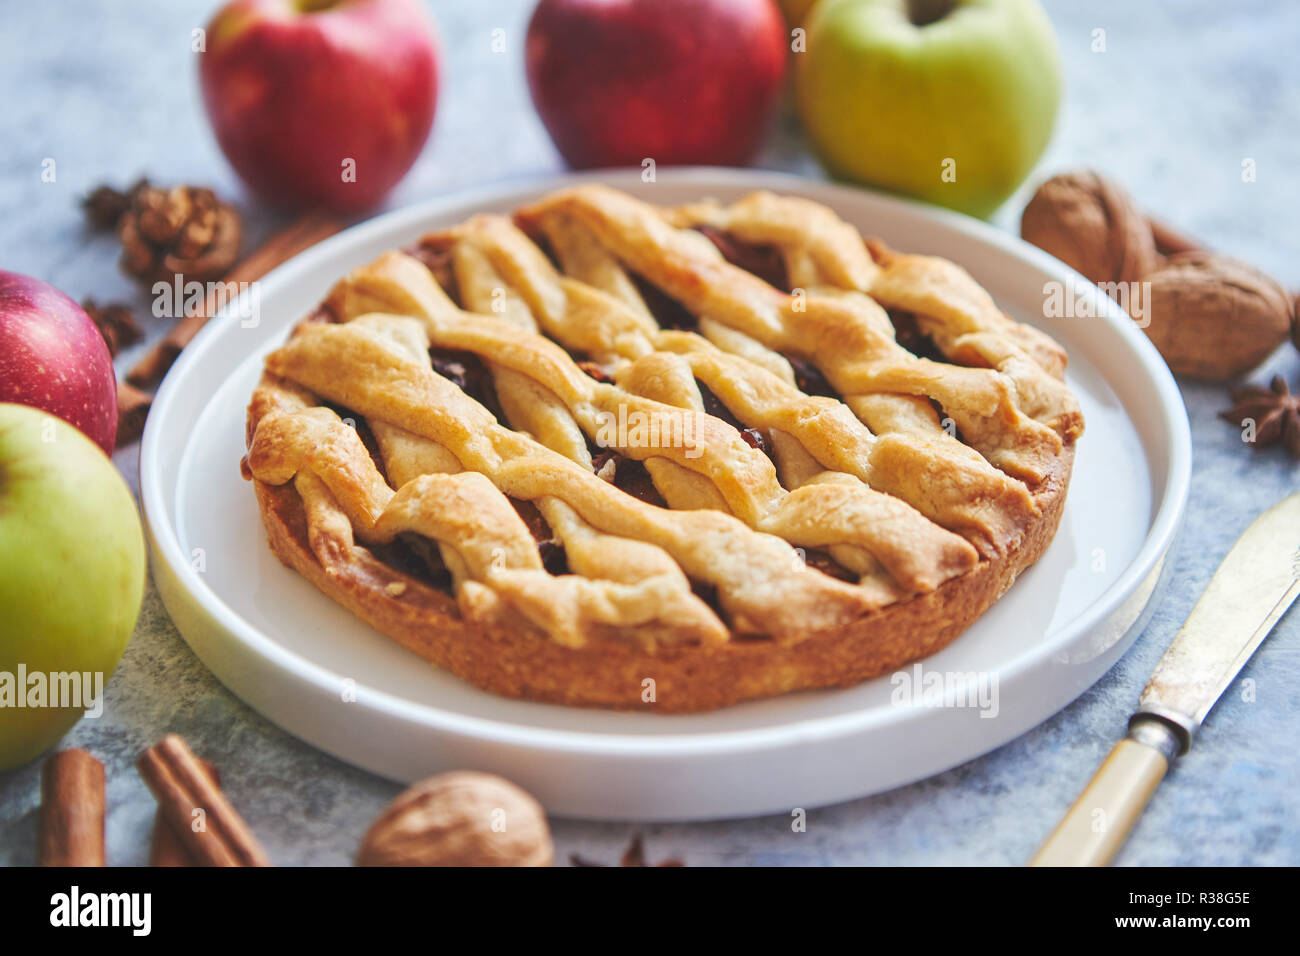 Tasty sweet homemade apple pie cake with cinnamon sticks, walnuts and apples - Stock Image